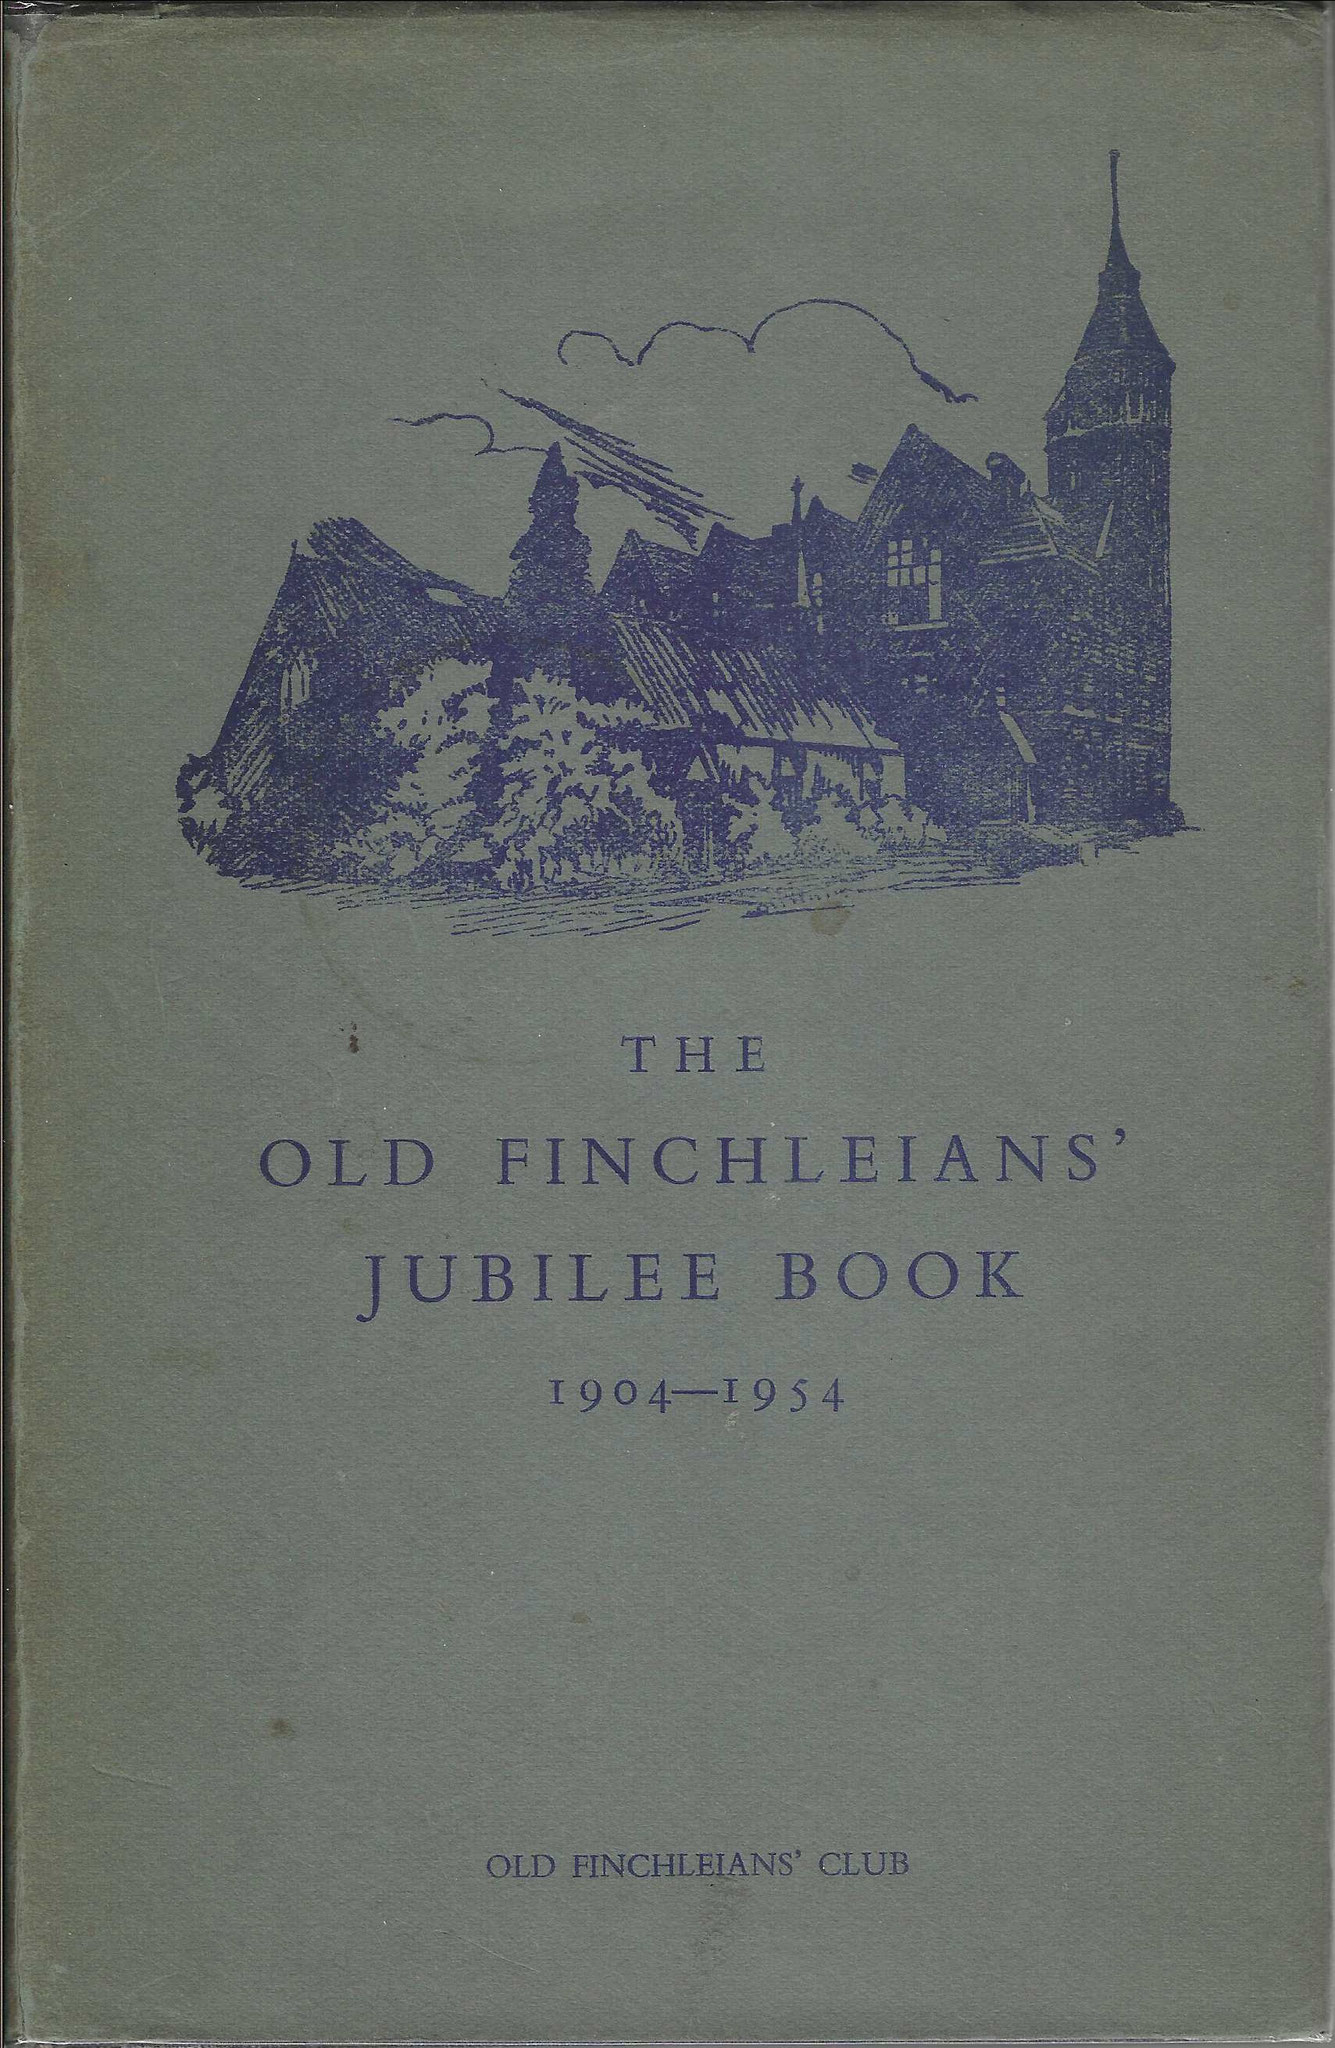 The Old Fichleians Jubilee Book, 1954 (collection P. Reinders)